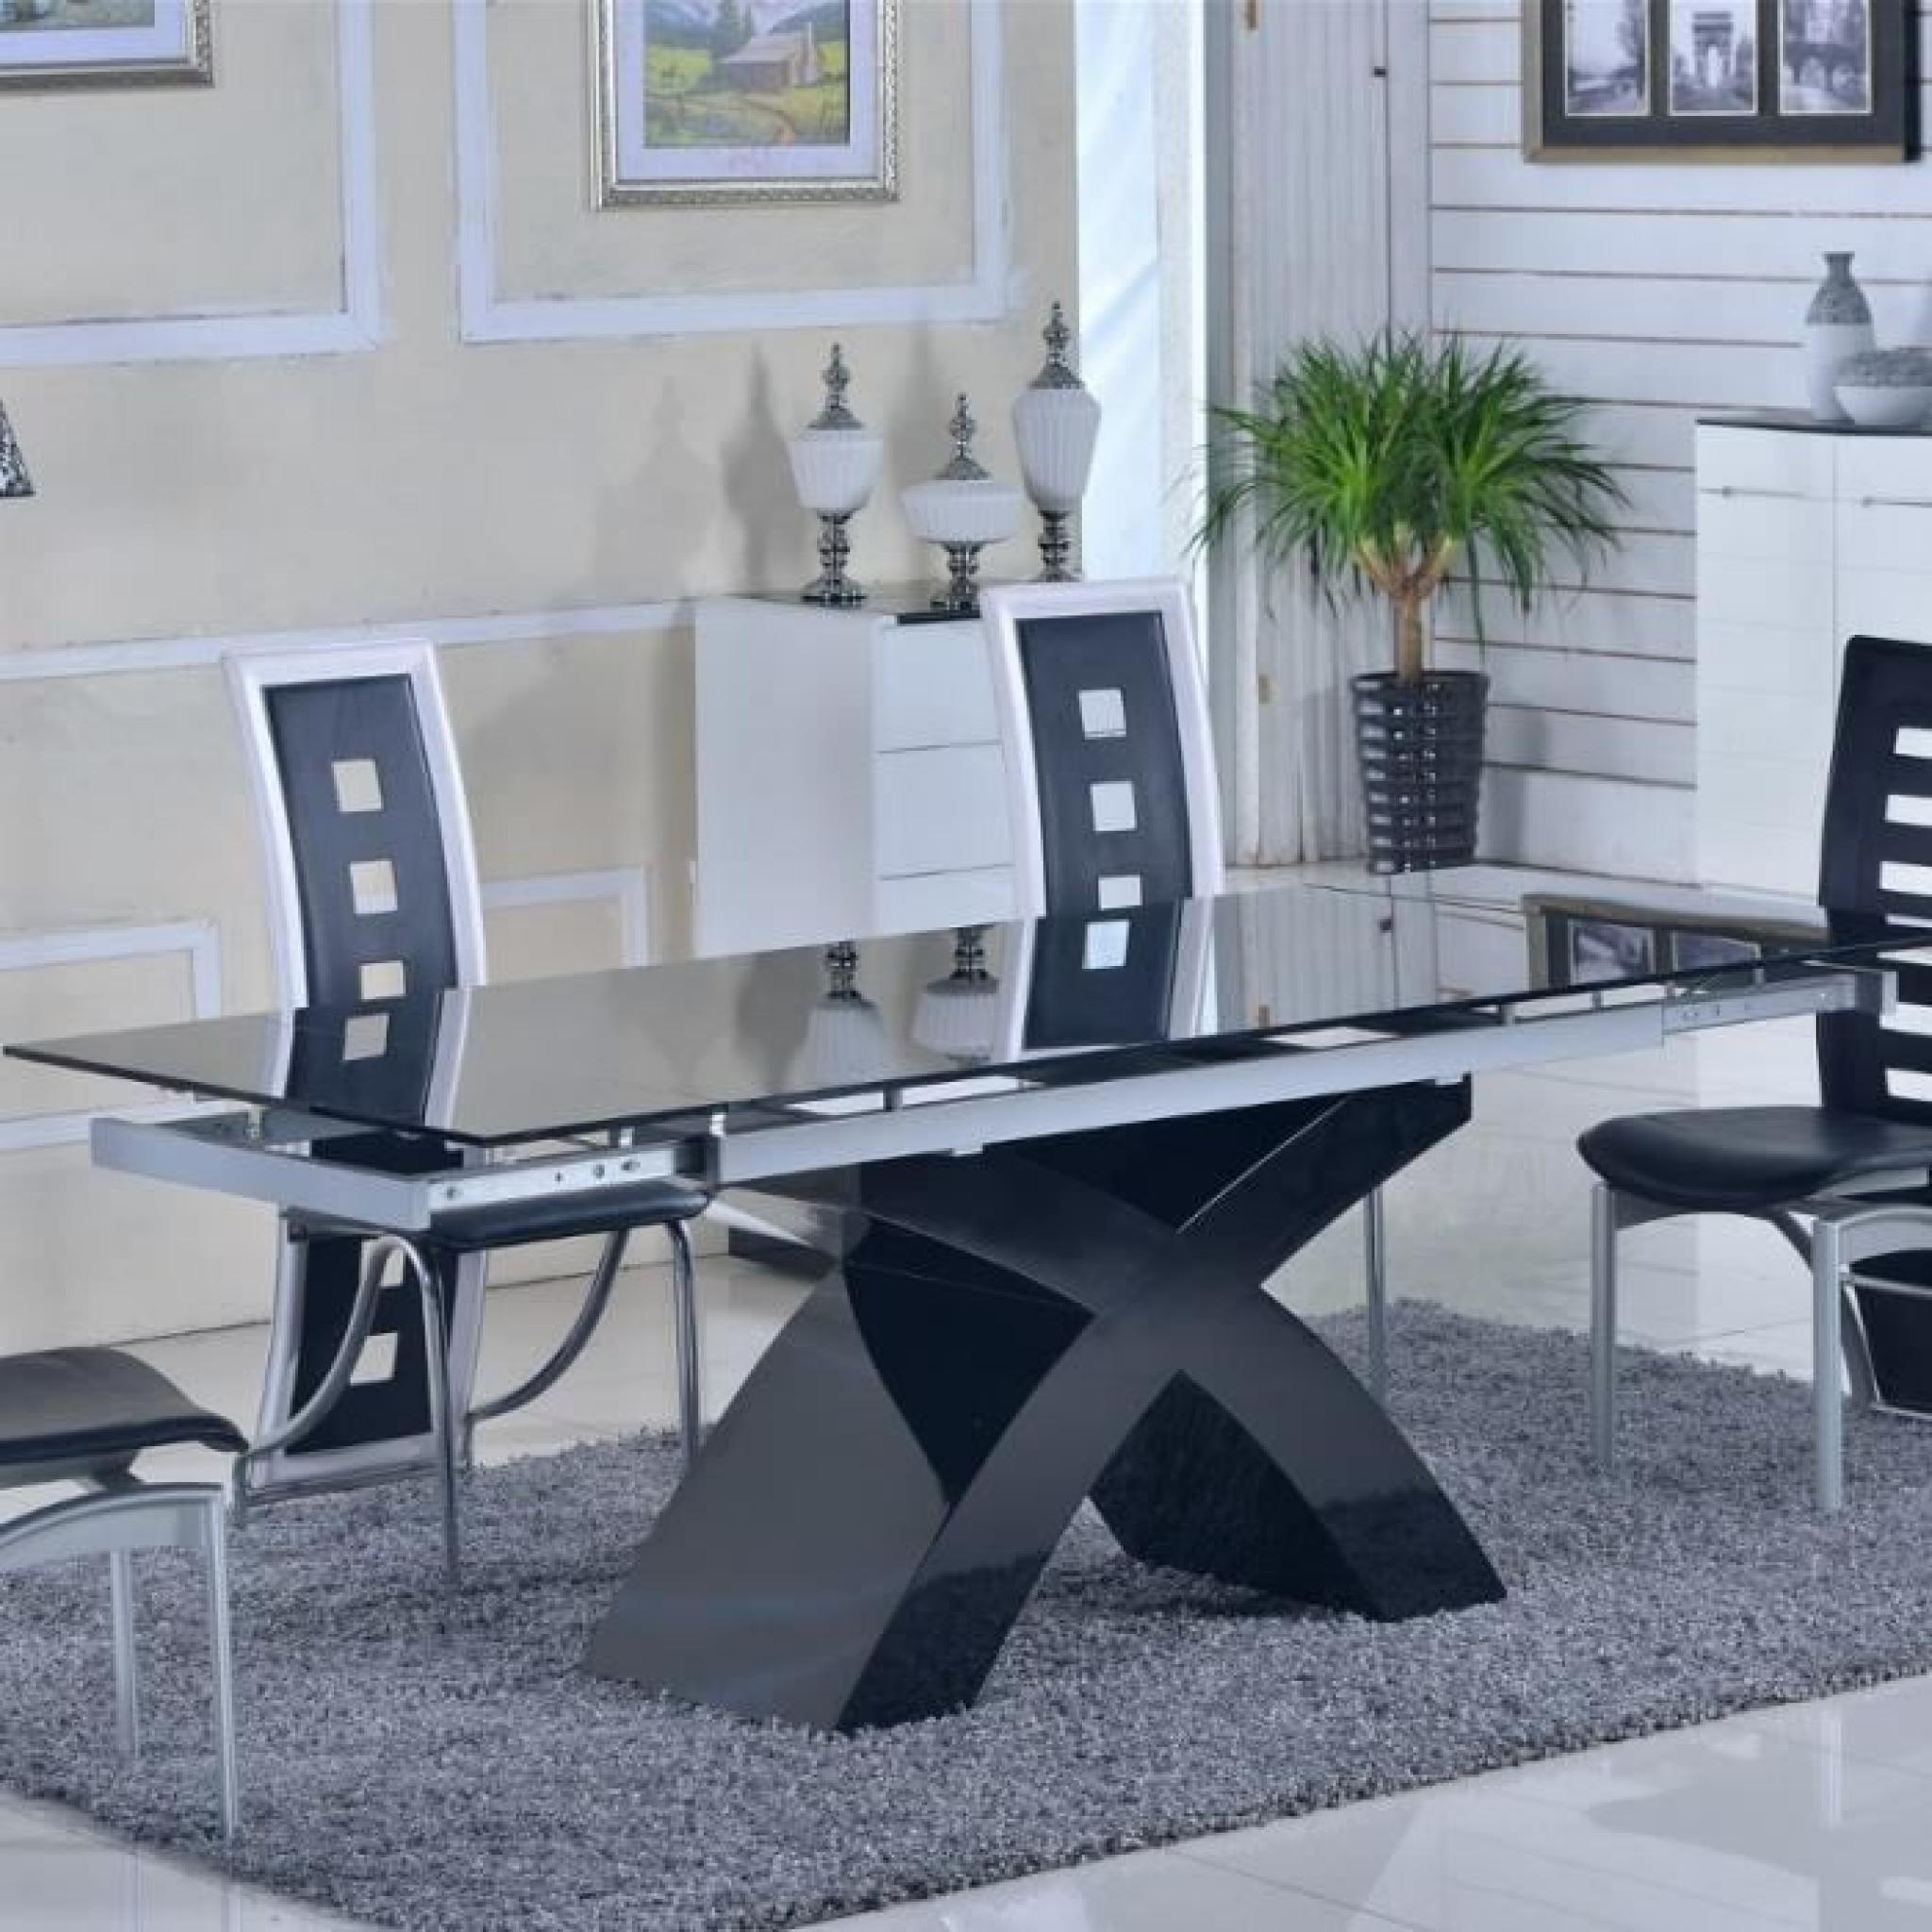 table en verre noir rallonges extensible elix achat vente table salle a manger pas cher. Black Bedroom Furniture Sets. Home Design Ideas